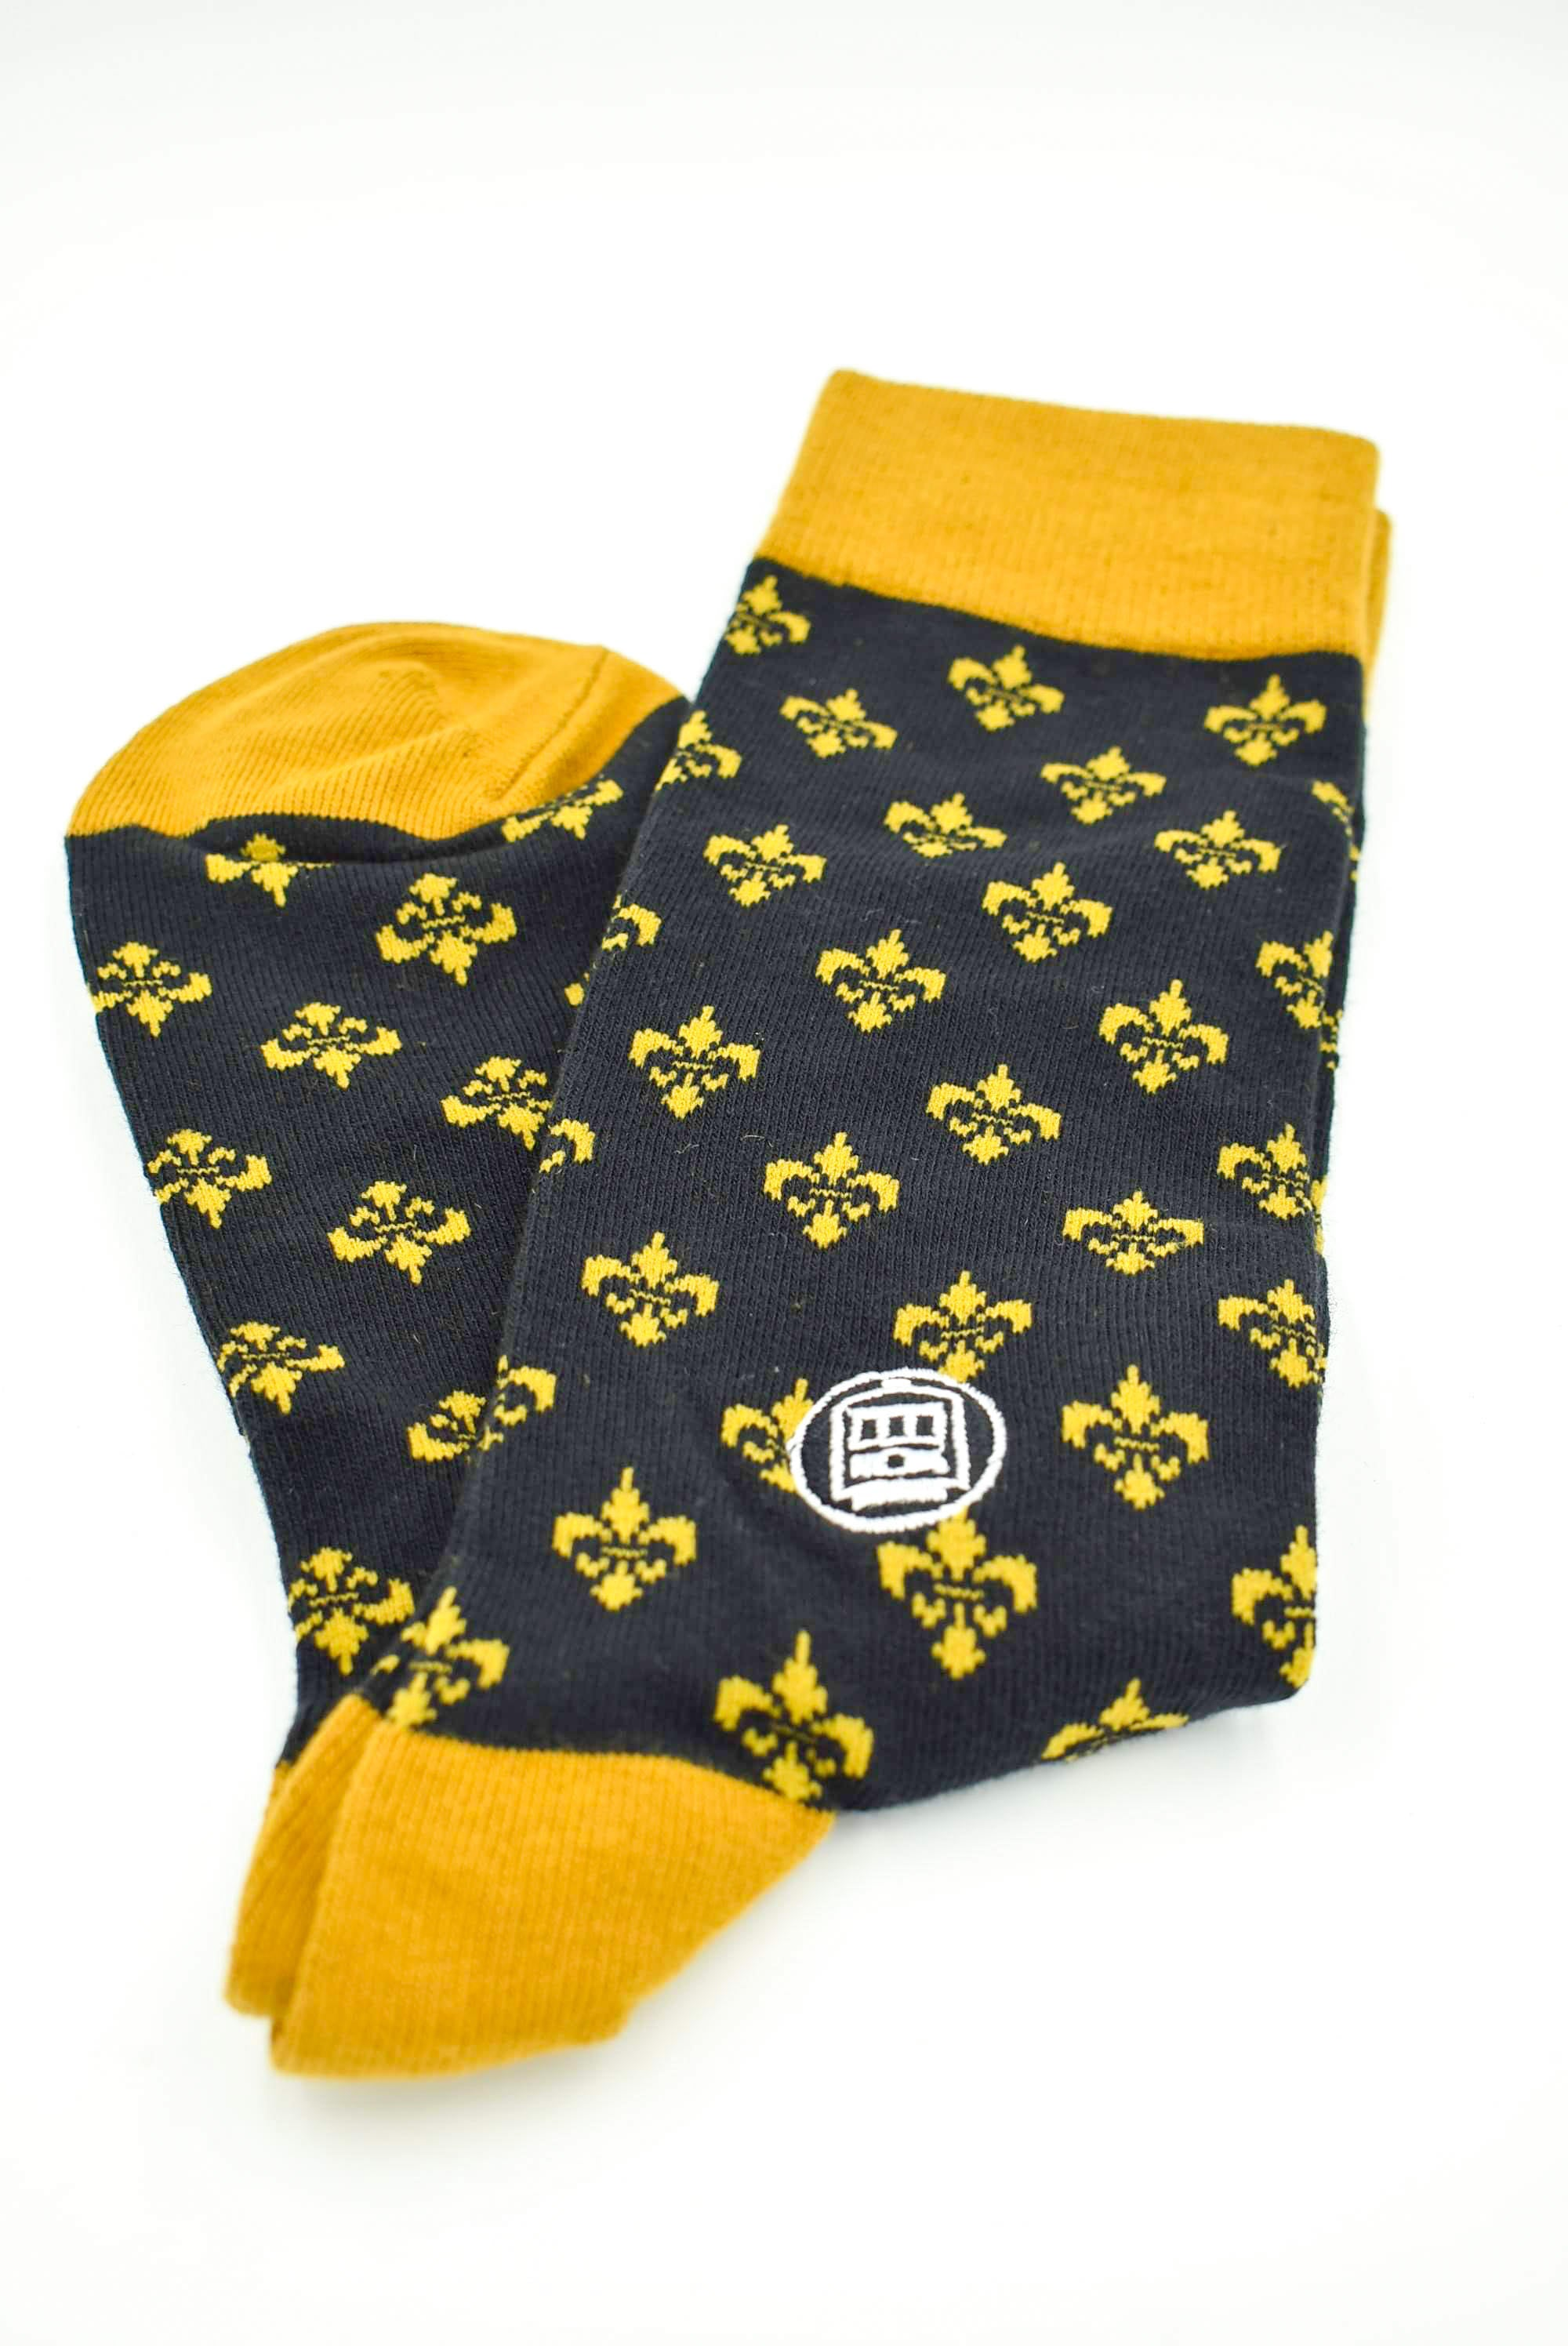 Black & Gold Socks